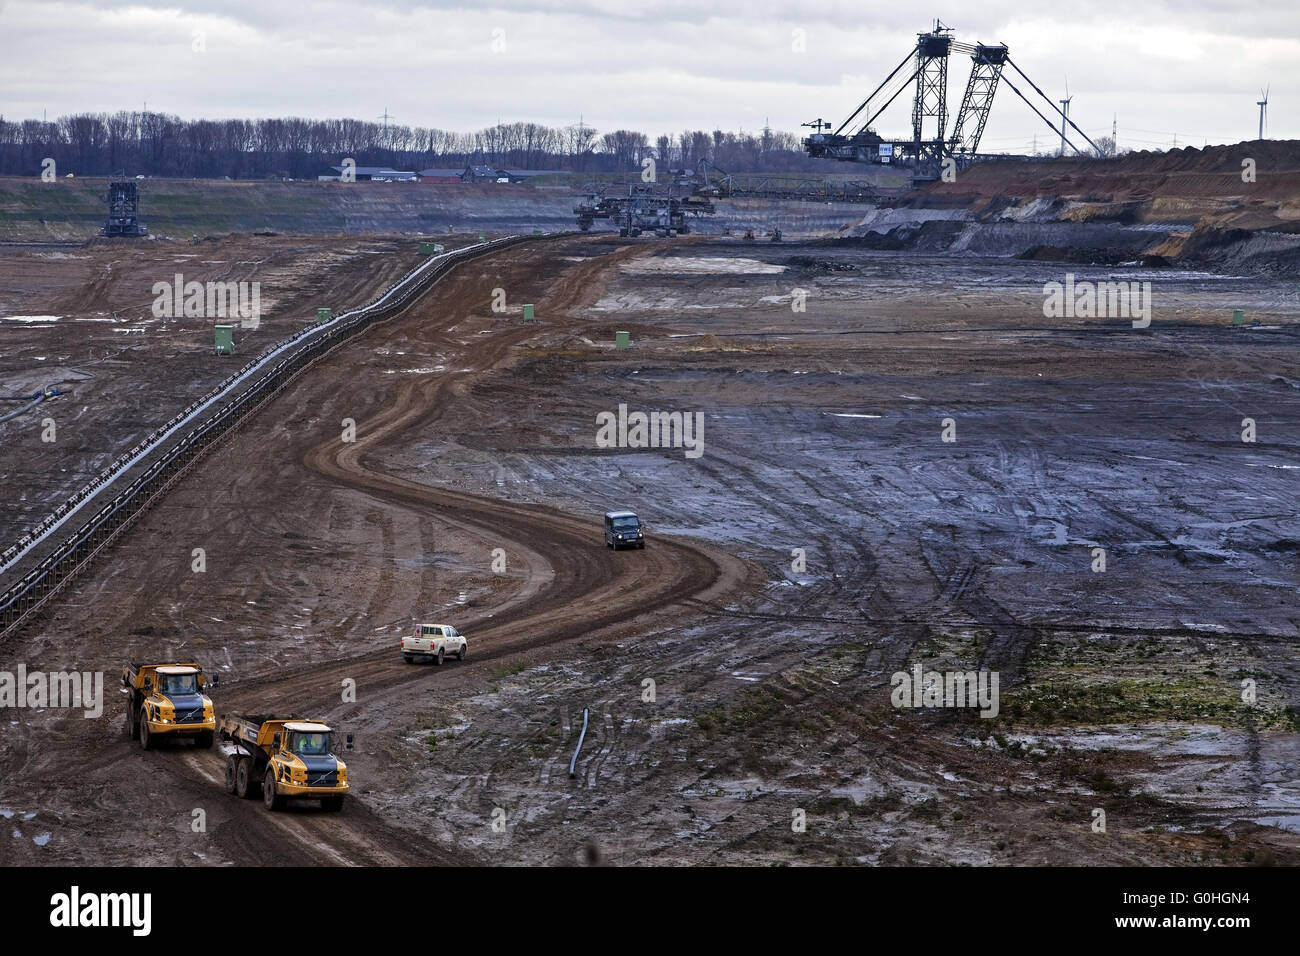 transport in brown coal surface mining Inden, North Rhine-Westphalia, Germany, Europe - Stock Image